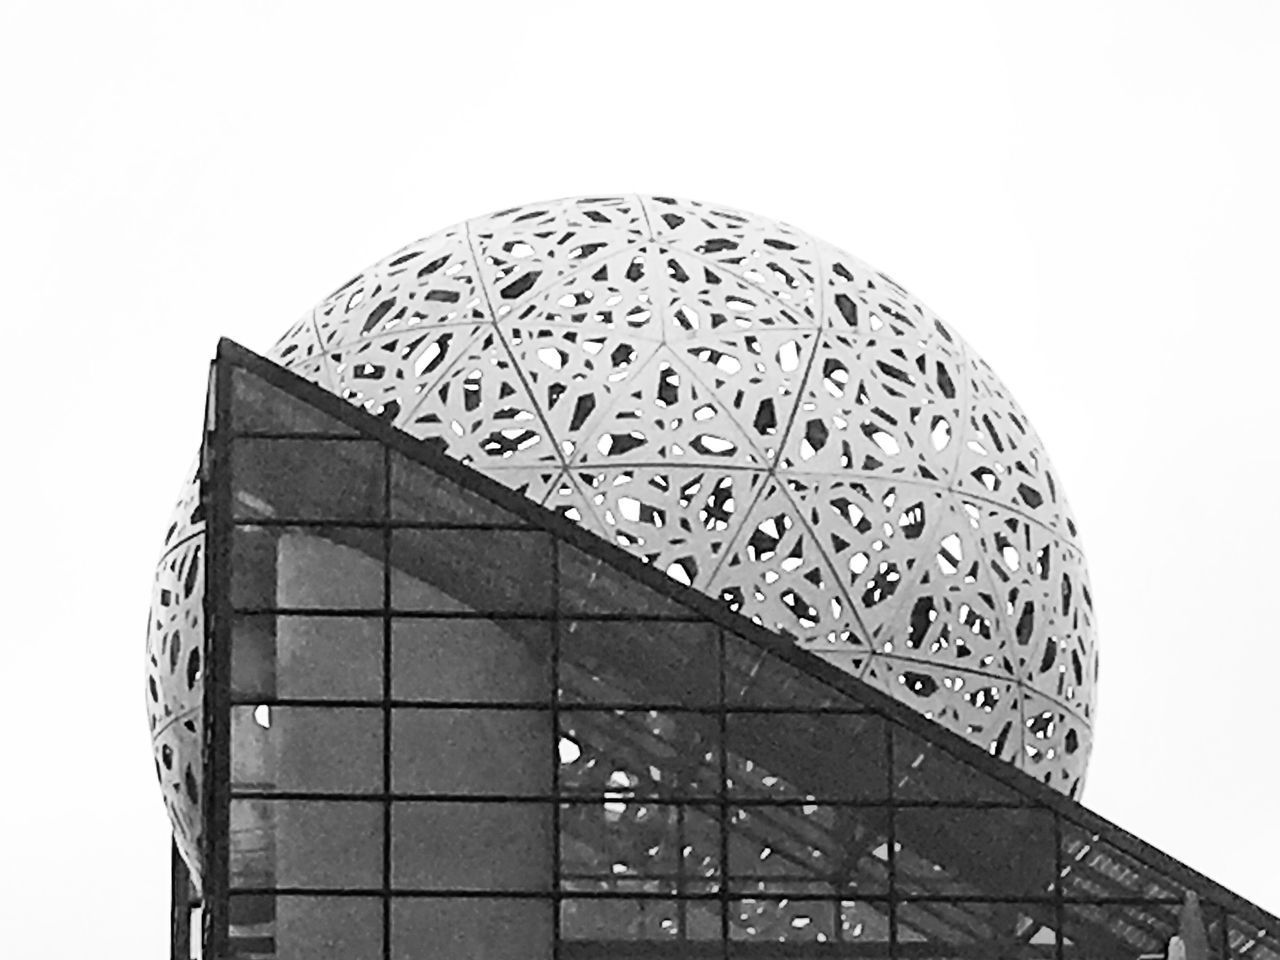 Architecture Built Structure Low Angle View Building Exterior Architecture Details City Modern Clear Sky Dome Outdoors Day Futuristic Sky EyeEm Best Shots EyeEmbestshots EyeEm Best Edits EyeEm Best Shots - Black + White EyeEmBestPics EyeEm Best Shots - Landscape EyeemTeam EyeEm Gallery Photo EyeEmBestEdits EyeEm Masterclass Awesome